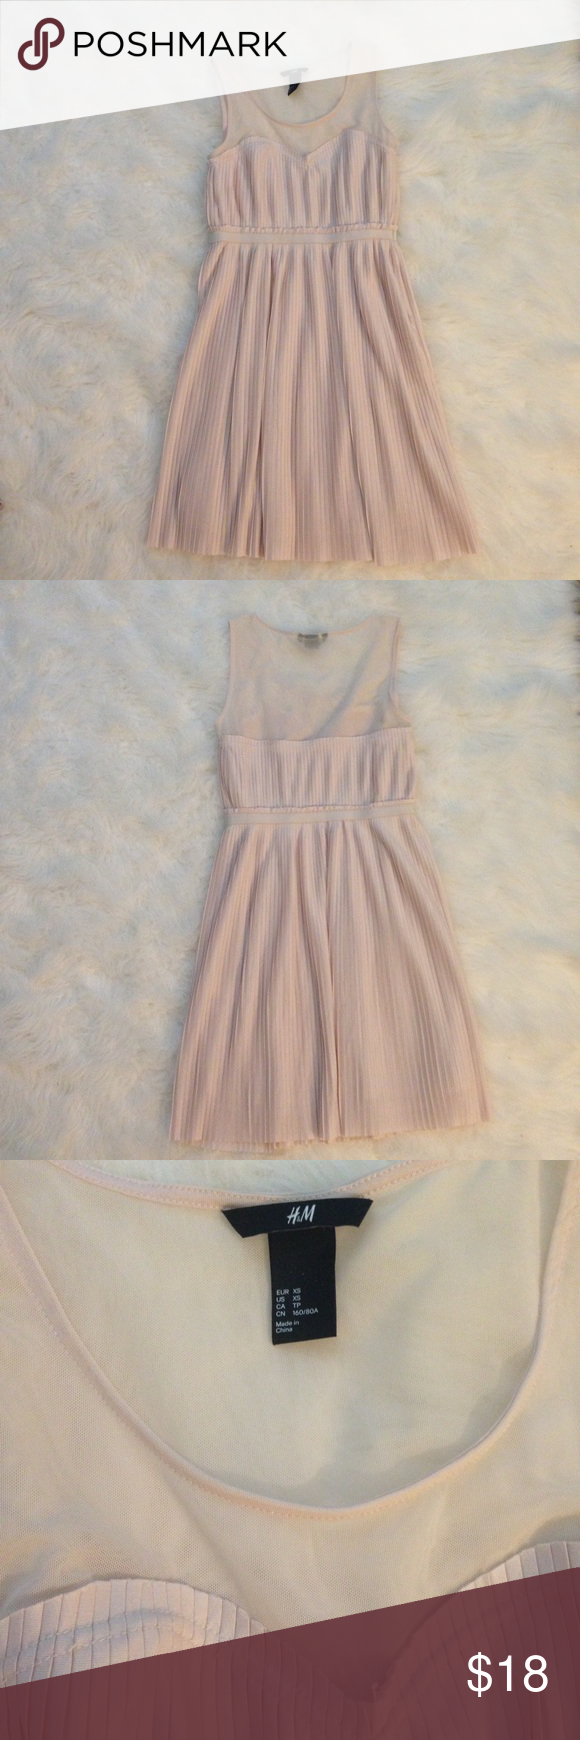 H&m pink pleated dress  HuM Pleated Cocktail Dress Mesh Pink xs  Pleats cocktail dress